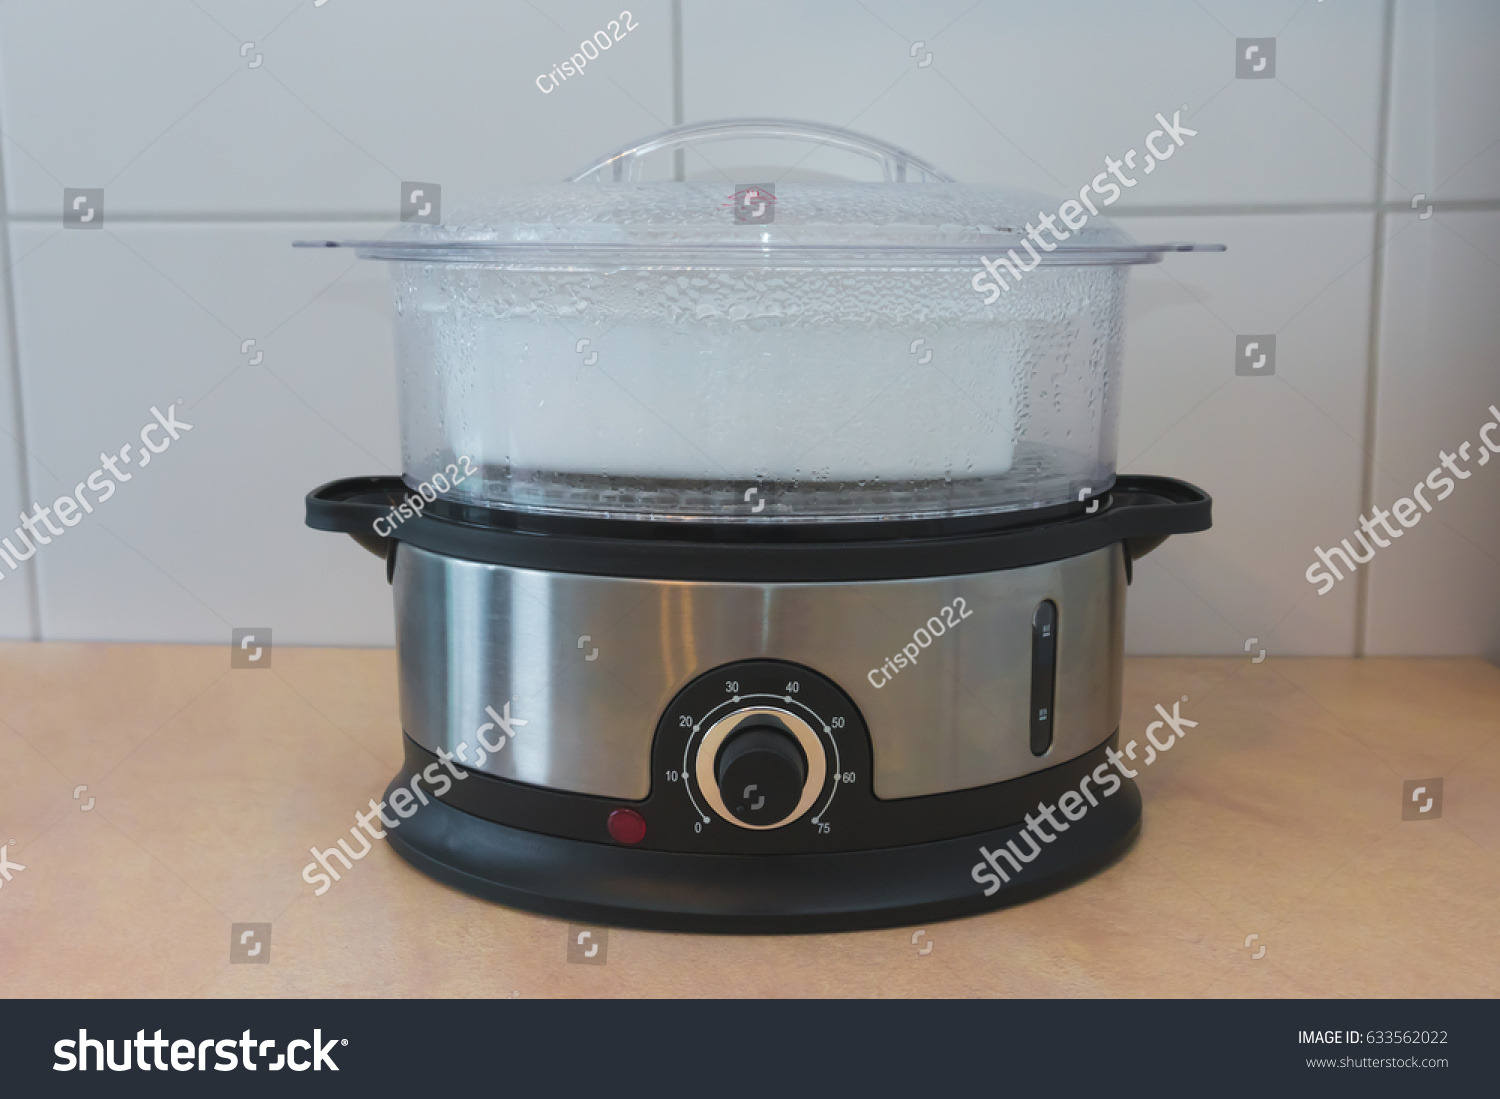 Homemade Steamer Healthy Food Stock Photo (Royalty Free) 633562022 ...